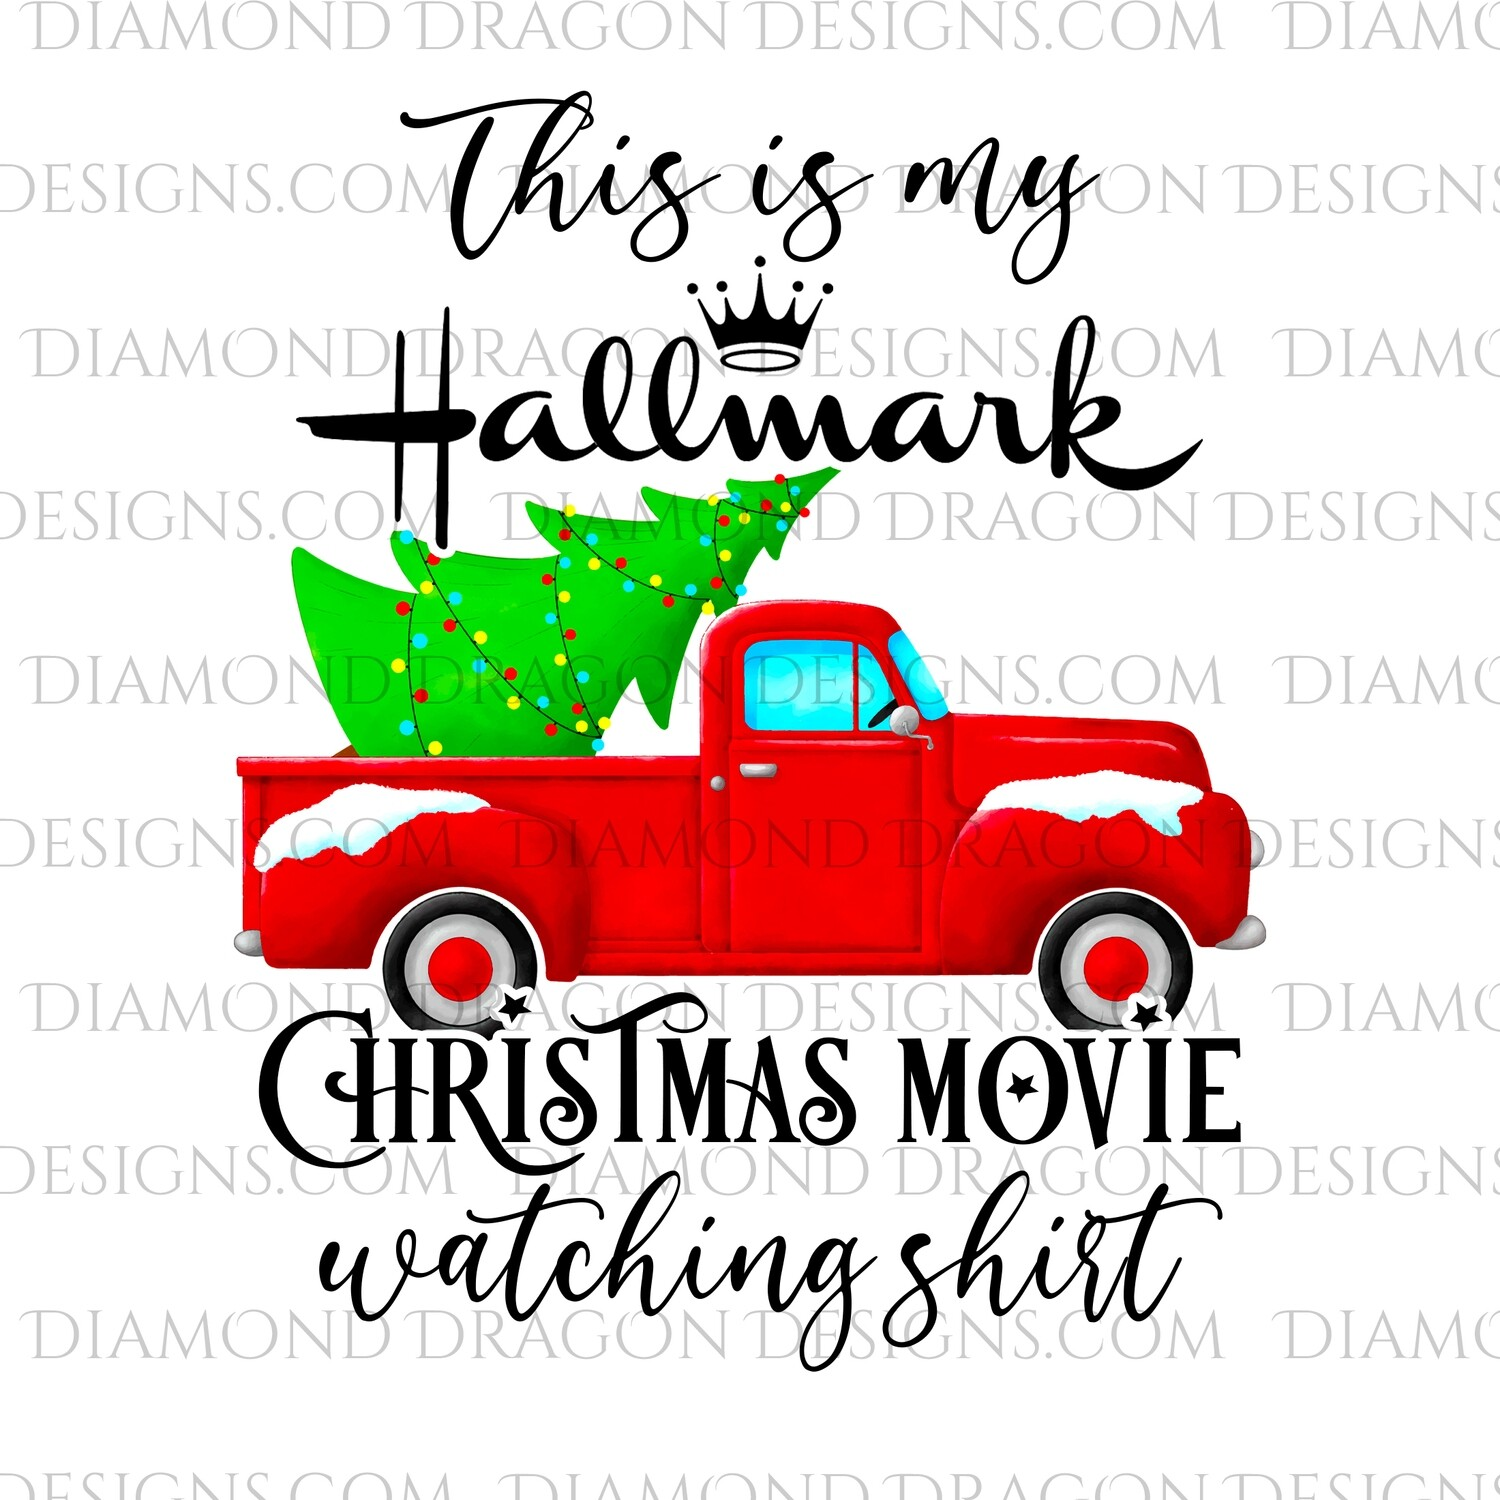 Christmas - Red Truck, Christmas Tree, Hallmark Christmas Movie Watching Shirt, Red Vintage Truck, Digital Image